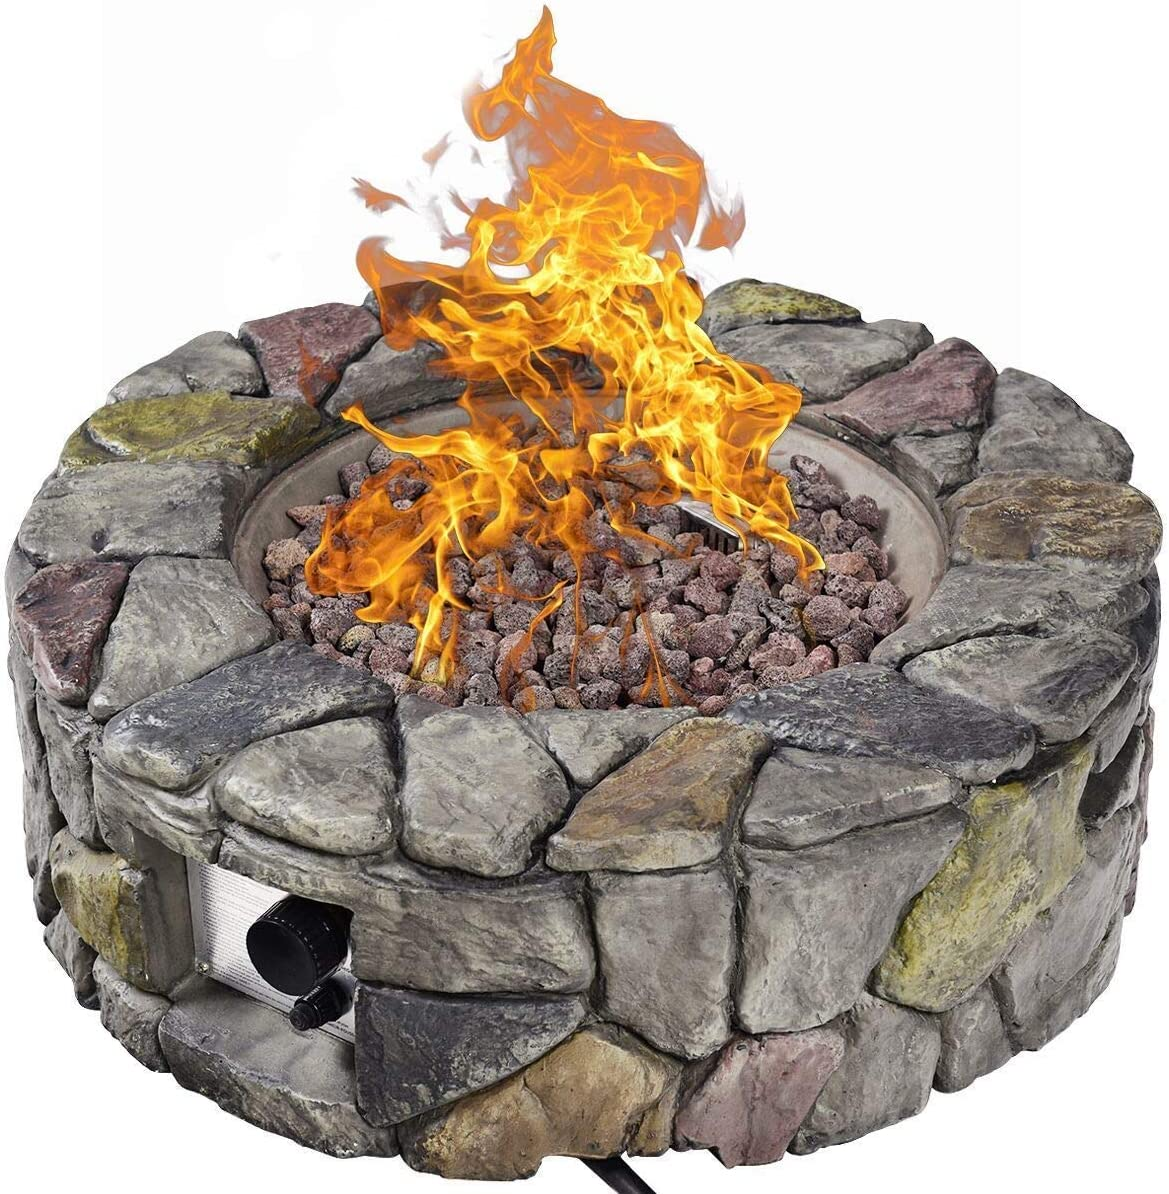 1 2 Inch To 1 Inch Thick For Propane Or Natural Gas Fire Pit Or Fireplace All Natural Gaspro 18lb Fire Pit Lava Rocks Outdoor Heating Coastalcameraclub Patio Lawn Garden